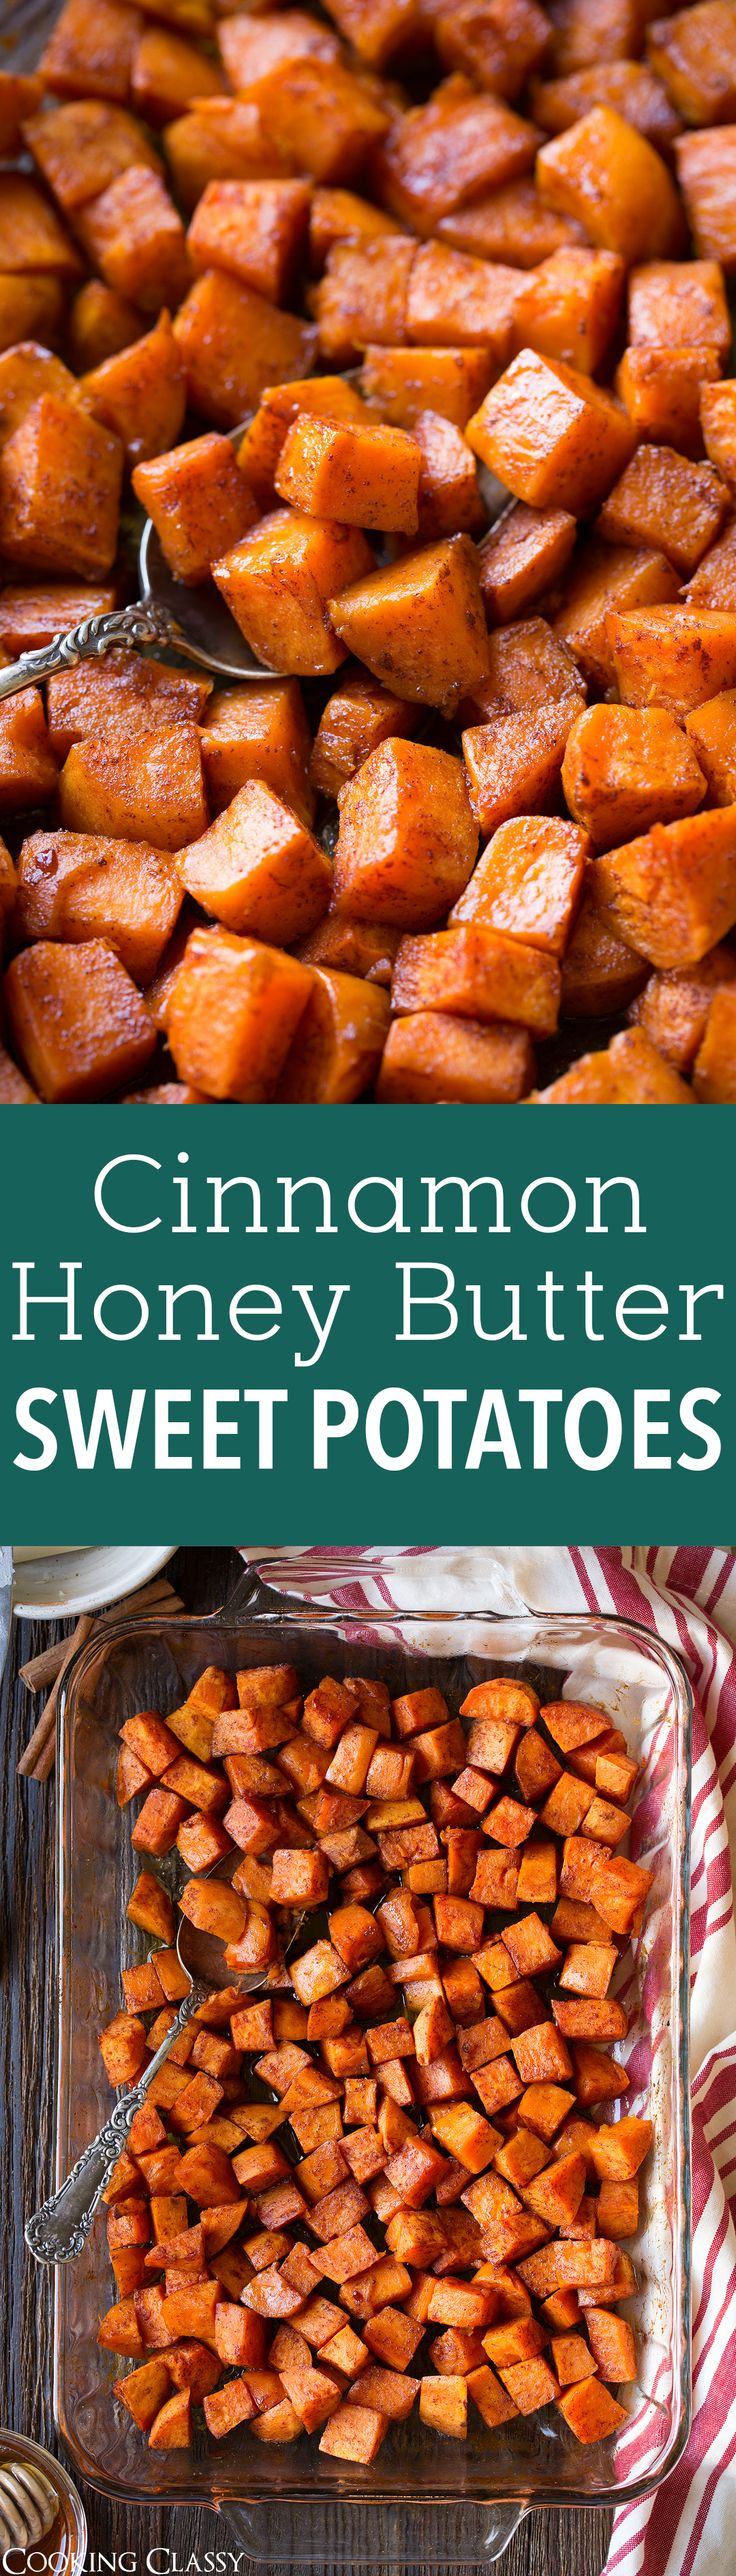 Cinnamon Honey Butter Roasted Sweet Potatoes - only 5 ingredients and so easy! Perfect fall side dish!